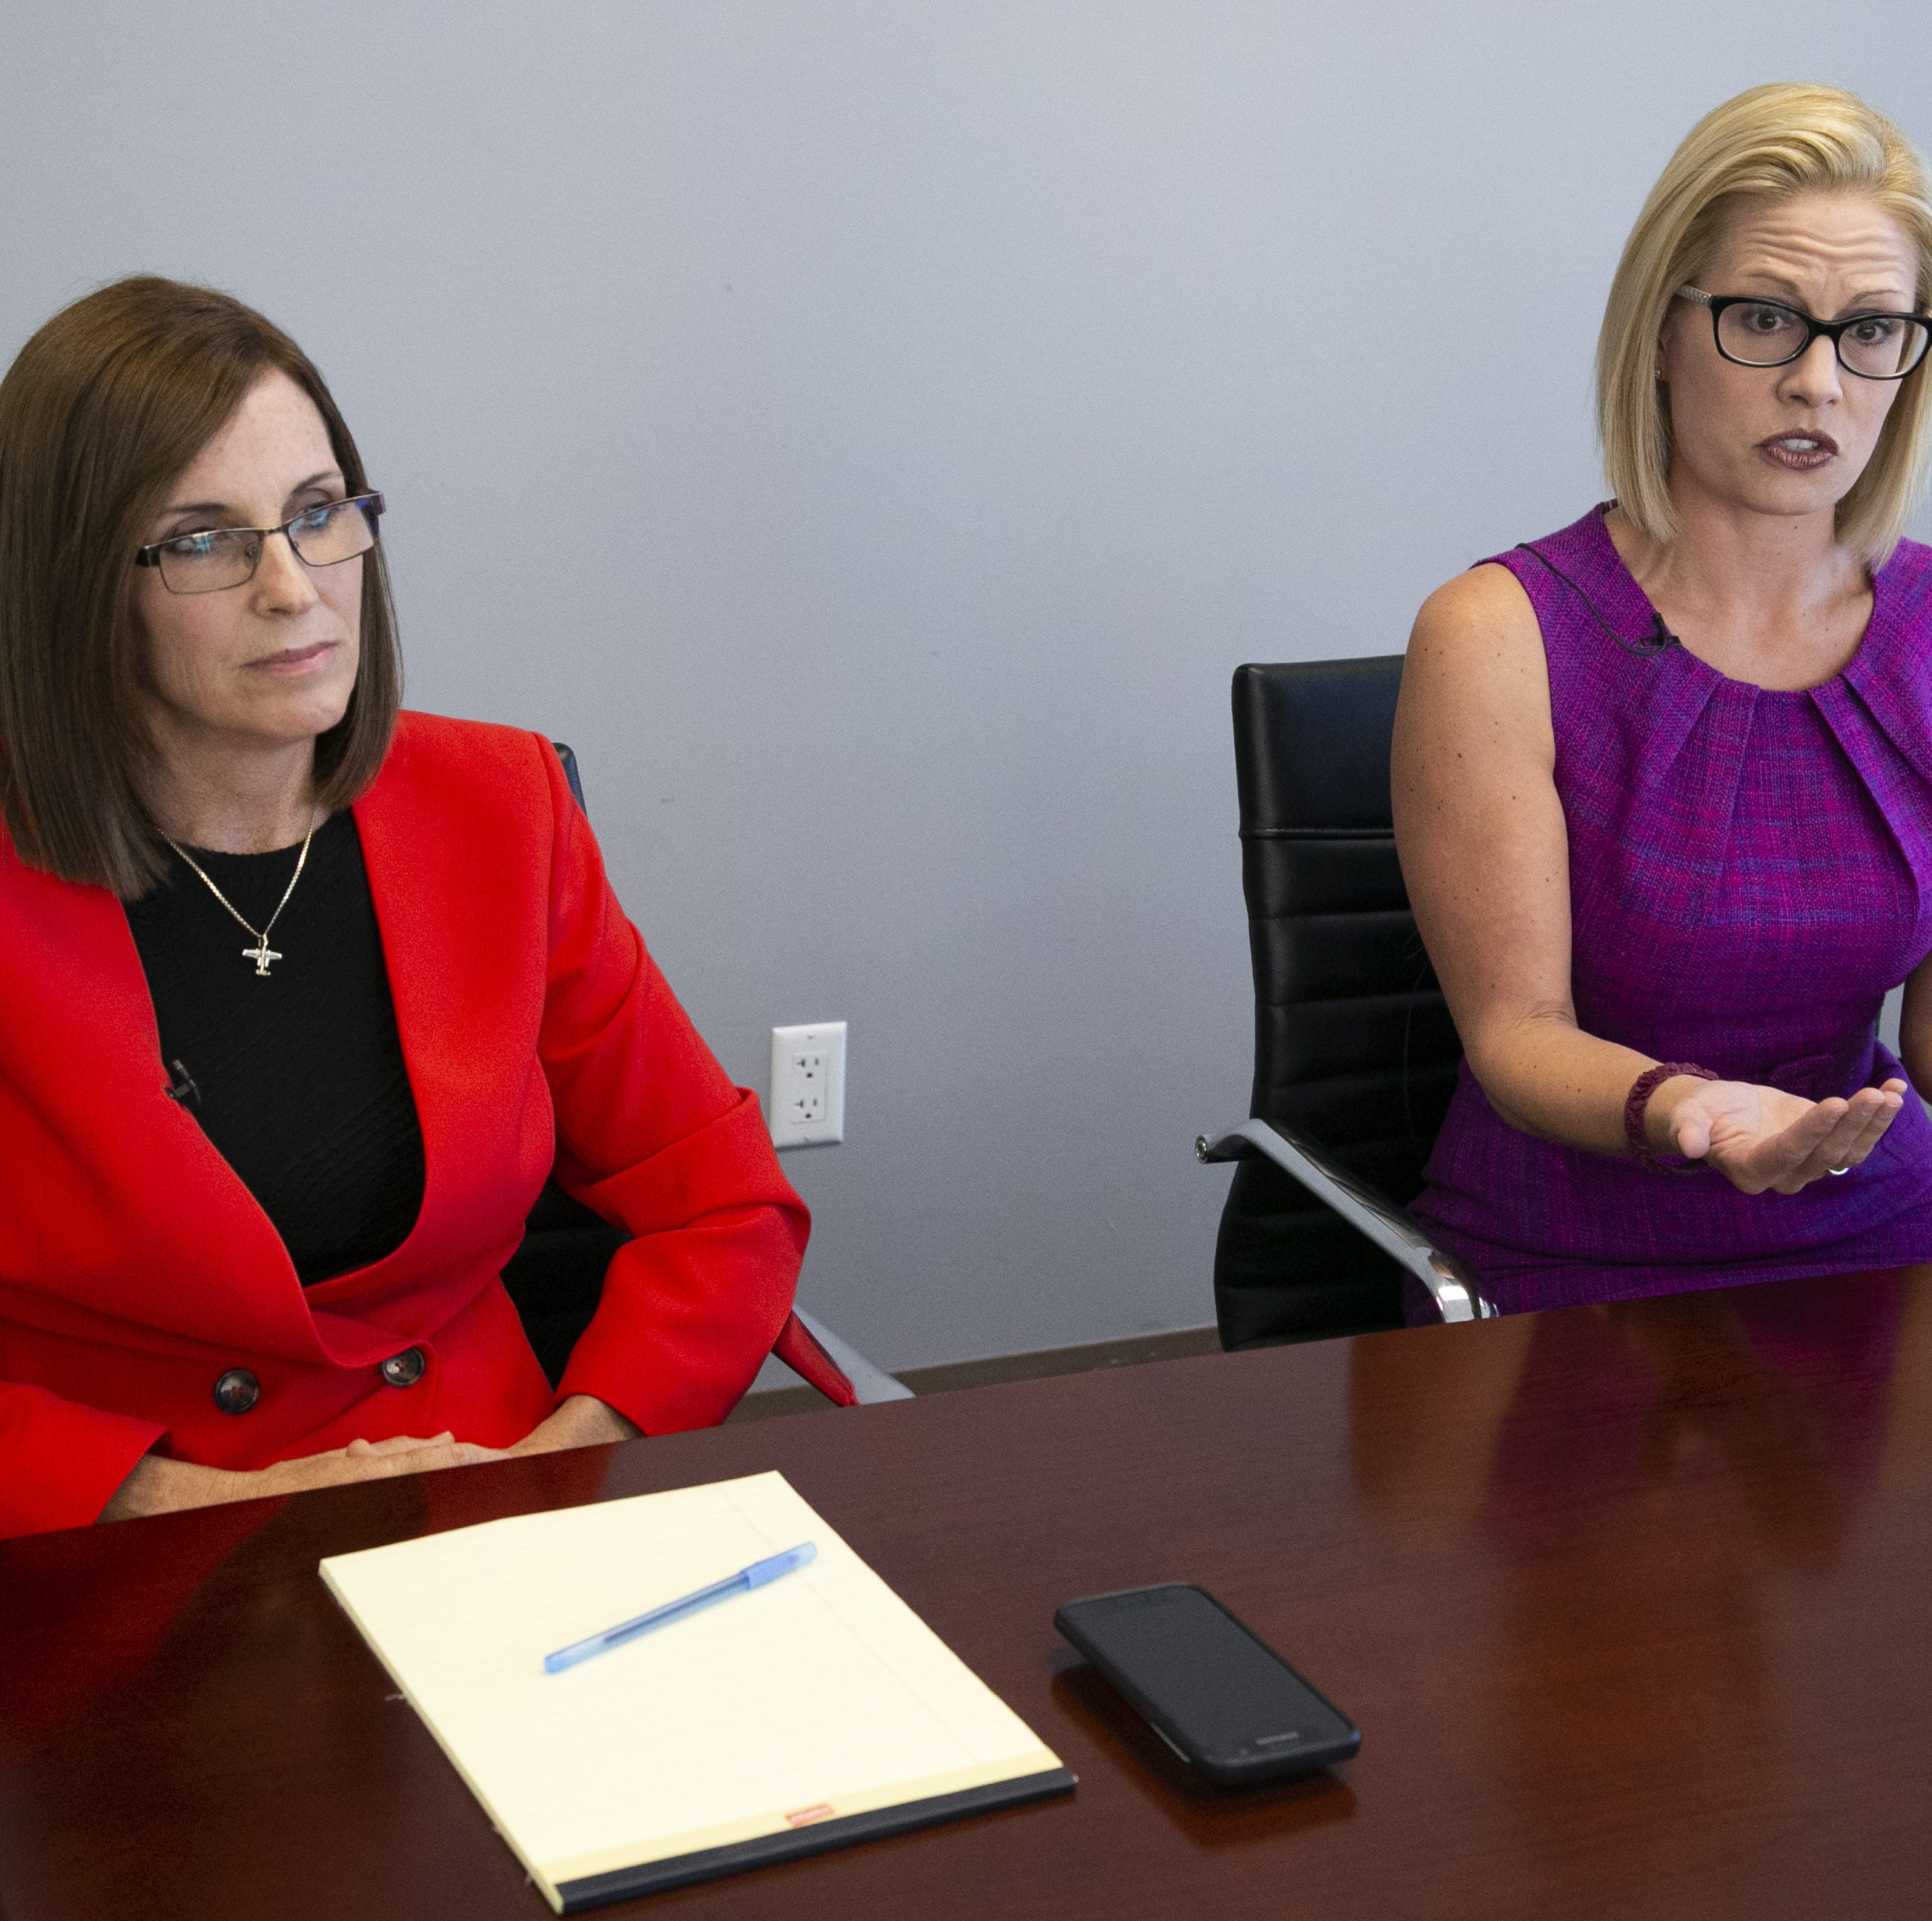 Why Martha McSally and Kyrsten Sinema are targeting suburban women